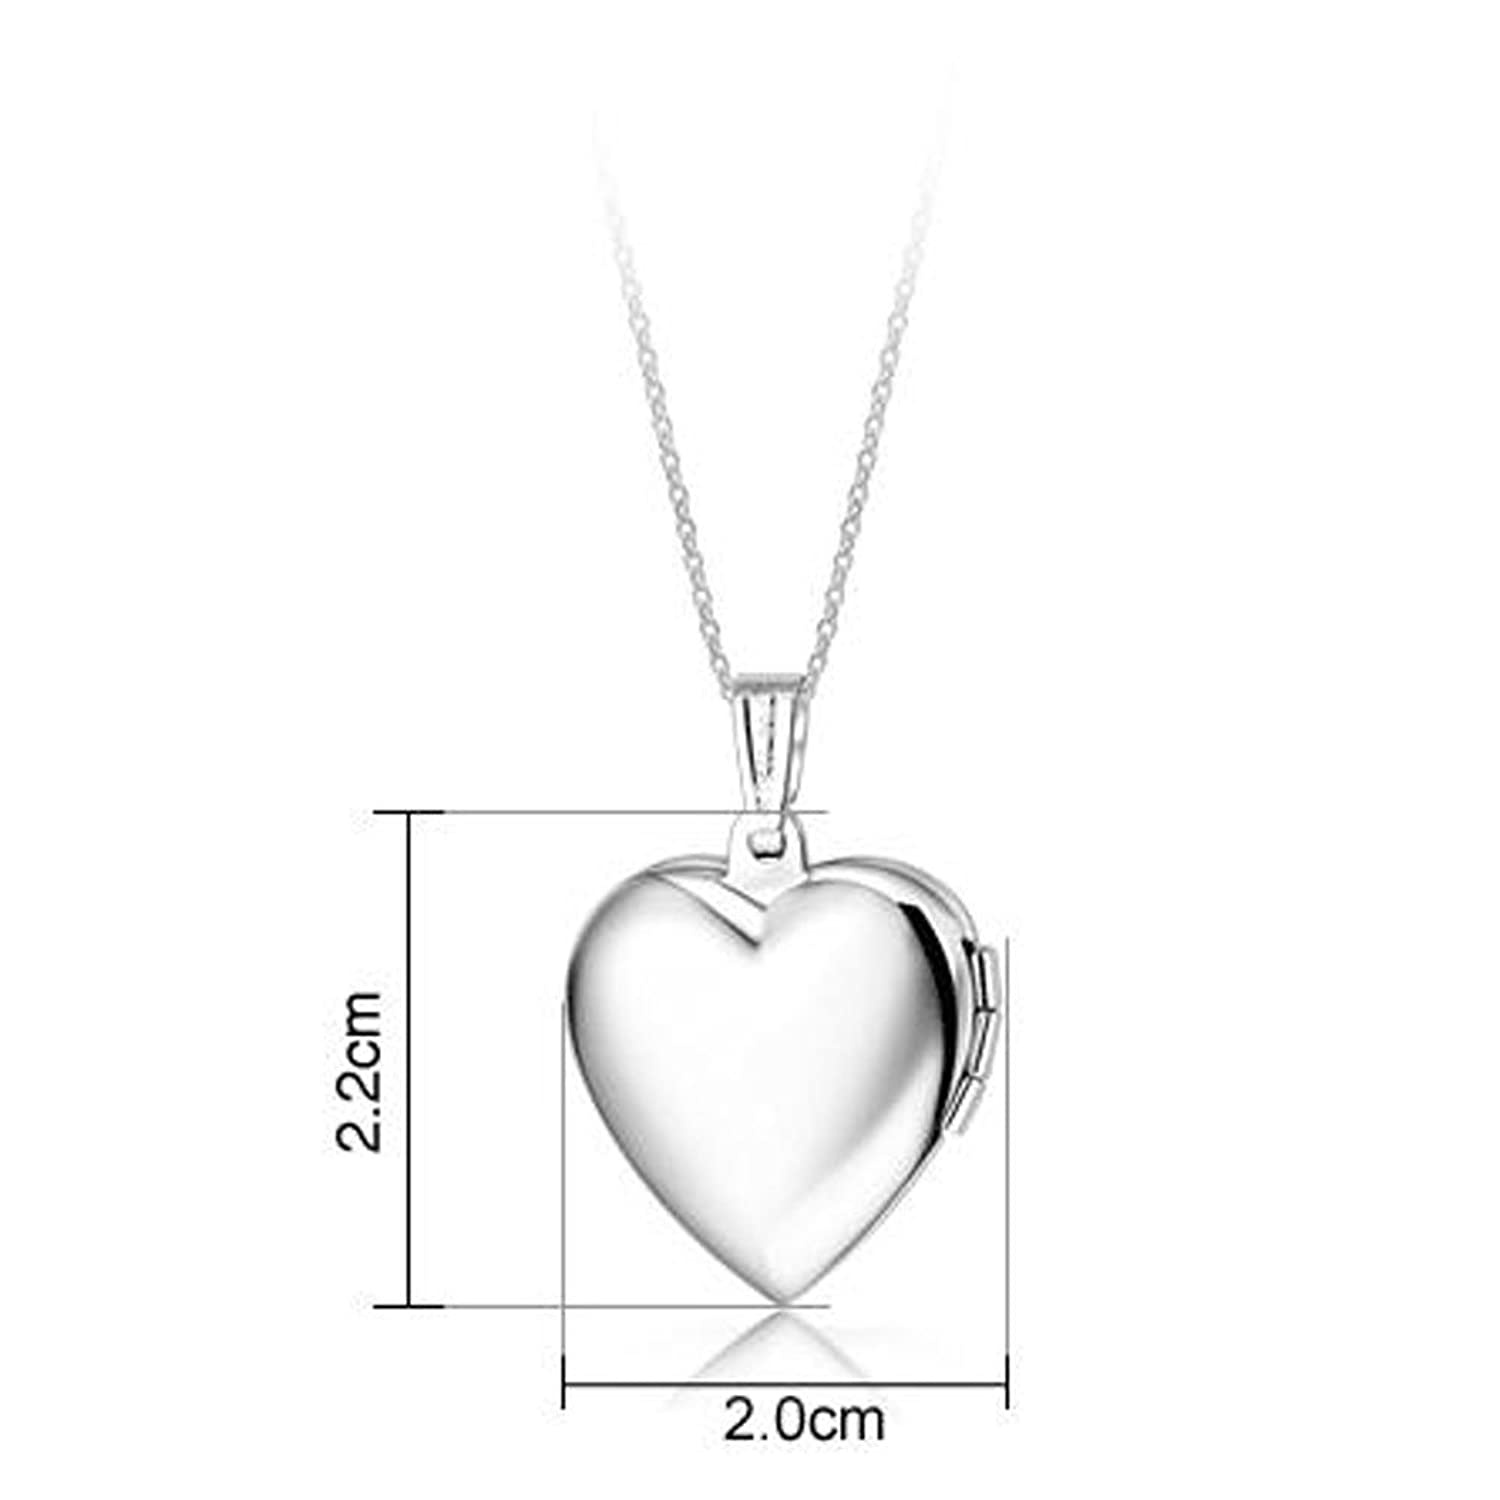 jewelry belons chain blue dp pendant photo amazon openable locket titanium heart pink steel com sweetheart necklace